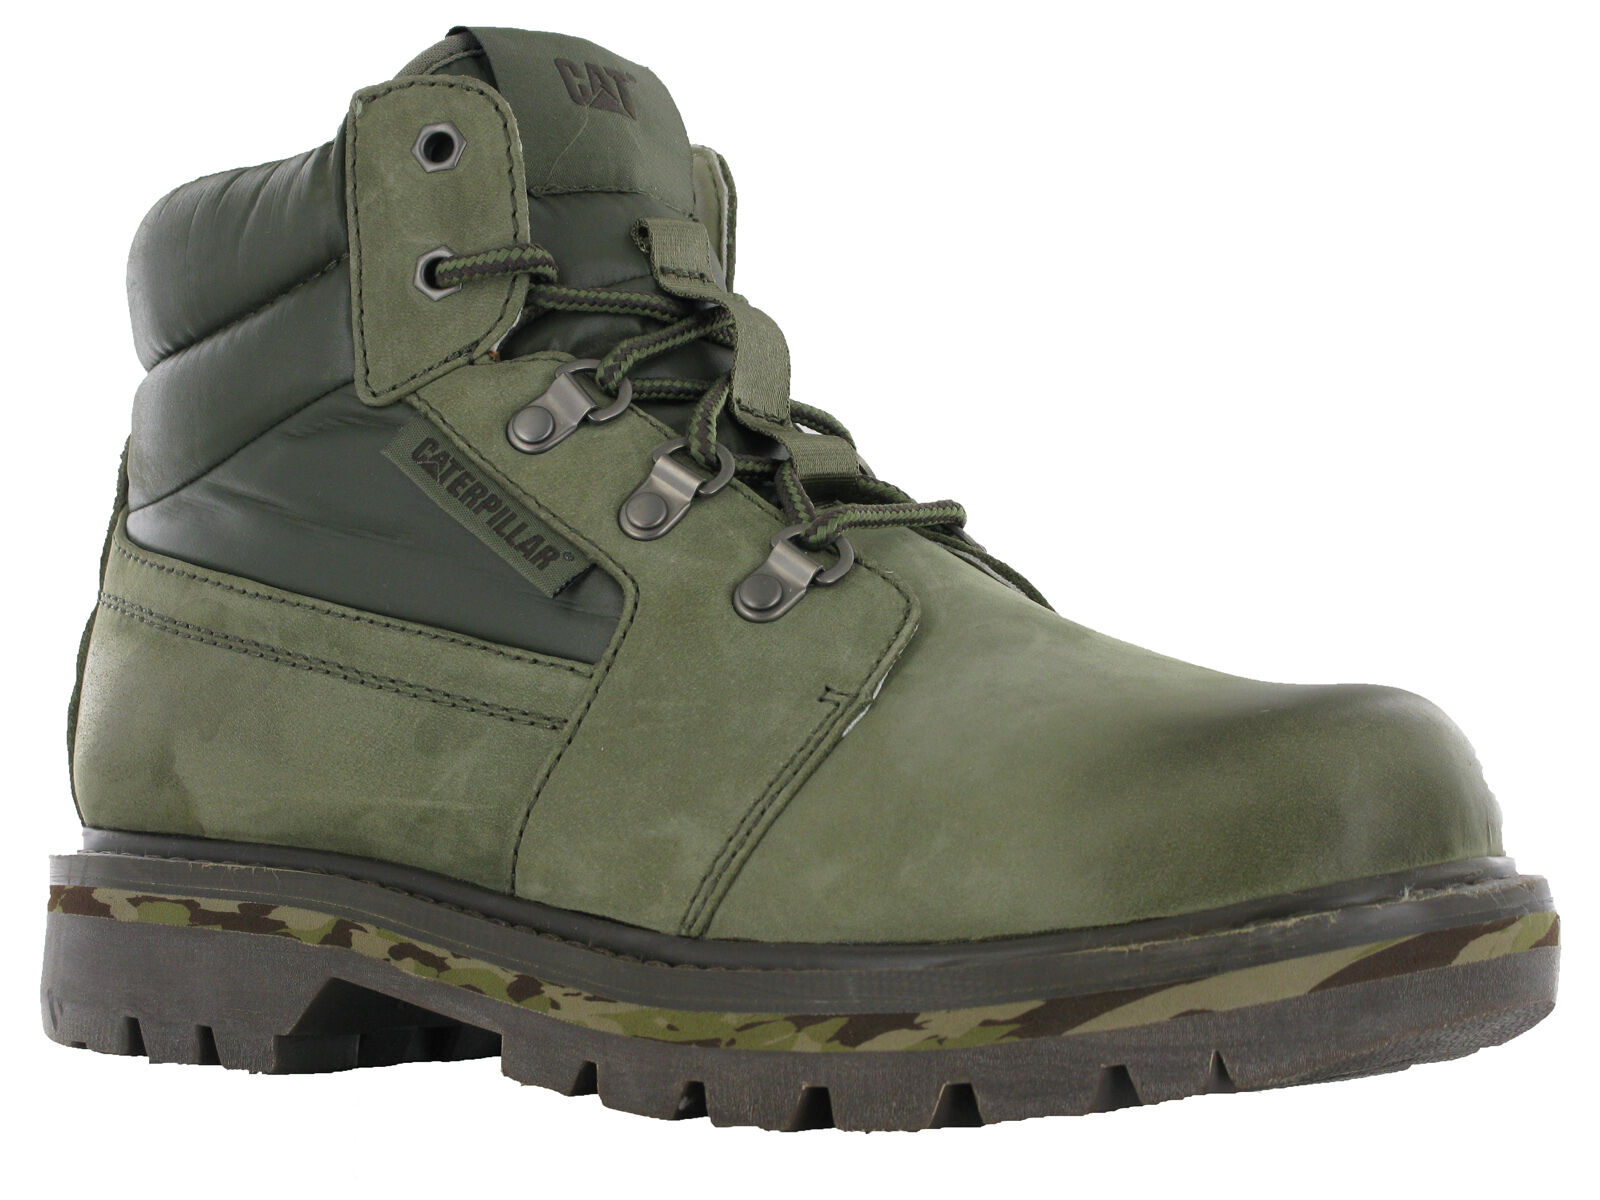 Details about CAT Caterpillar Junction Ankle Boots Mens Suede Leather Burnt Olive Camo Shoes